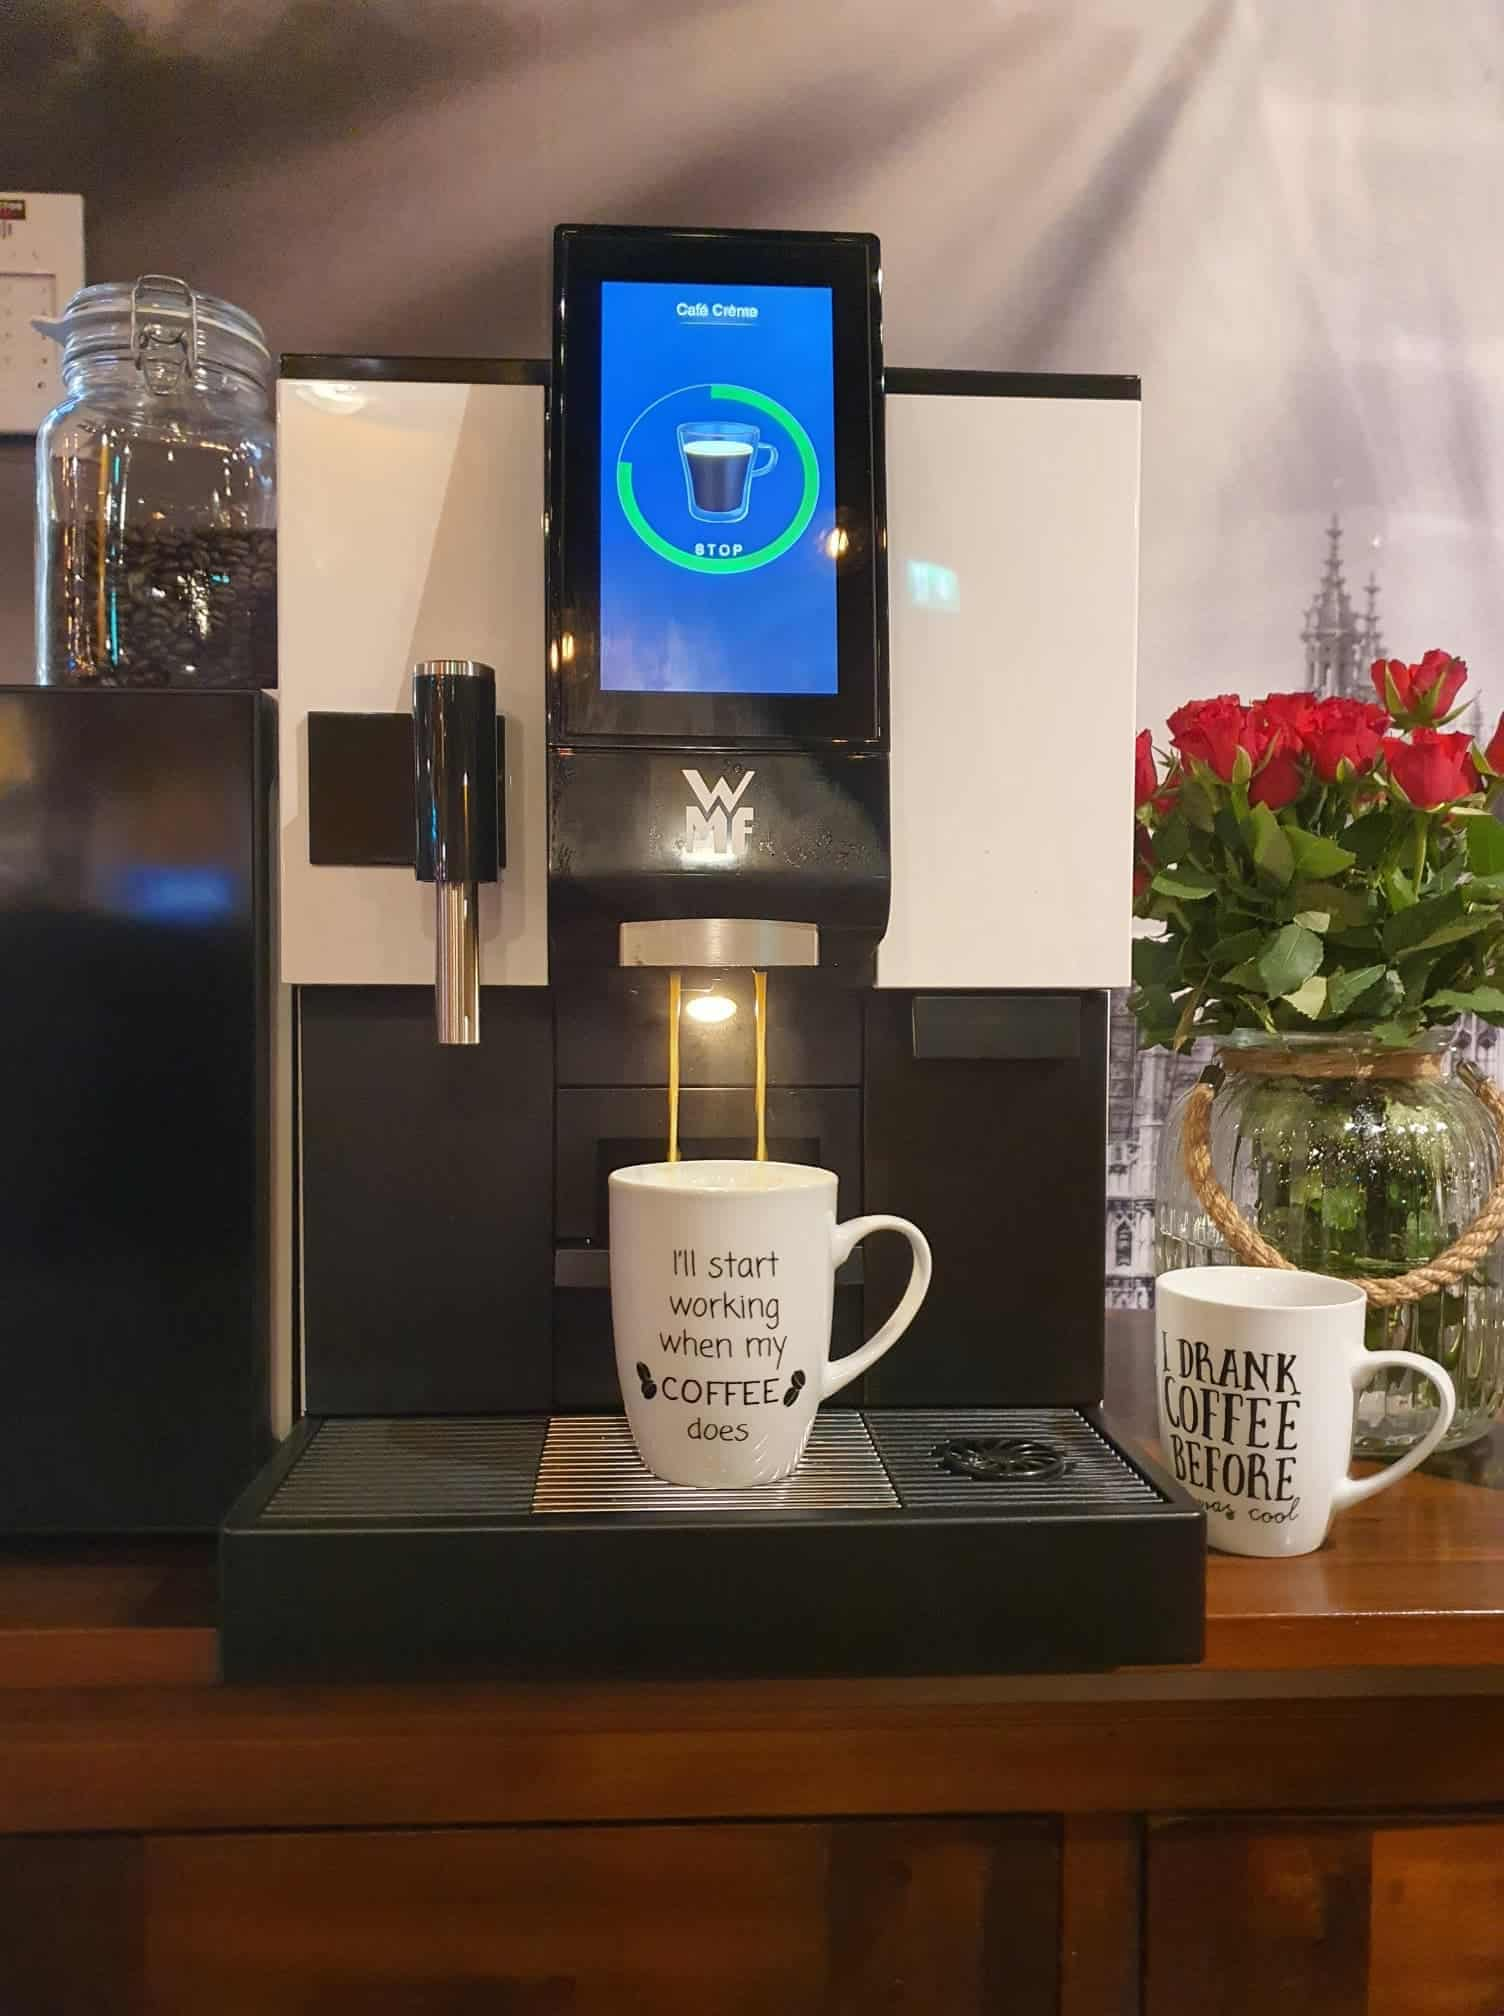 Always fresh and freshly brewed coffee in our new coffee machine